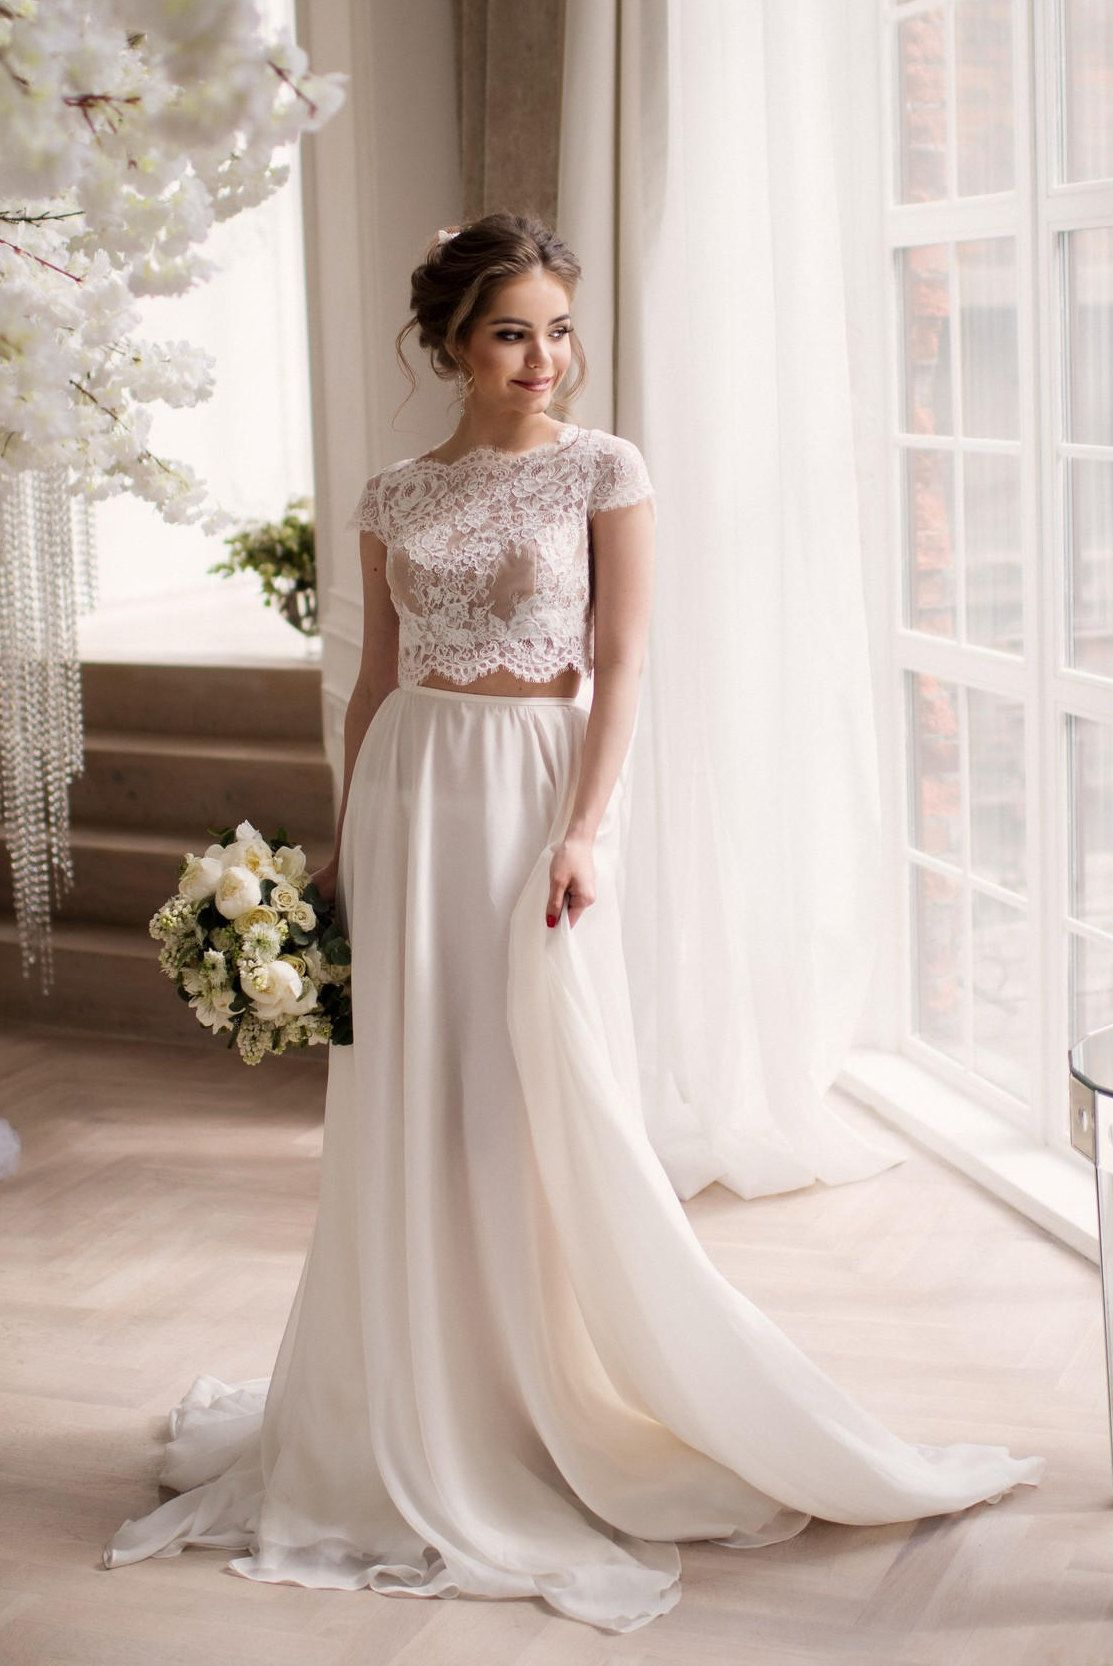 Anna Campbell 2020 Belle The Magazine In 2020 Anna Campbell Wedding Dress Crop Top Wedding Dress Anna Campbell Wedding